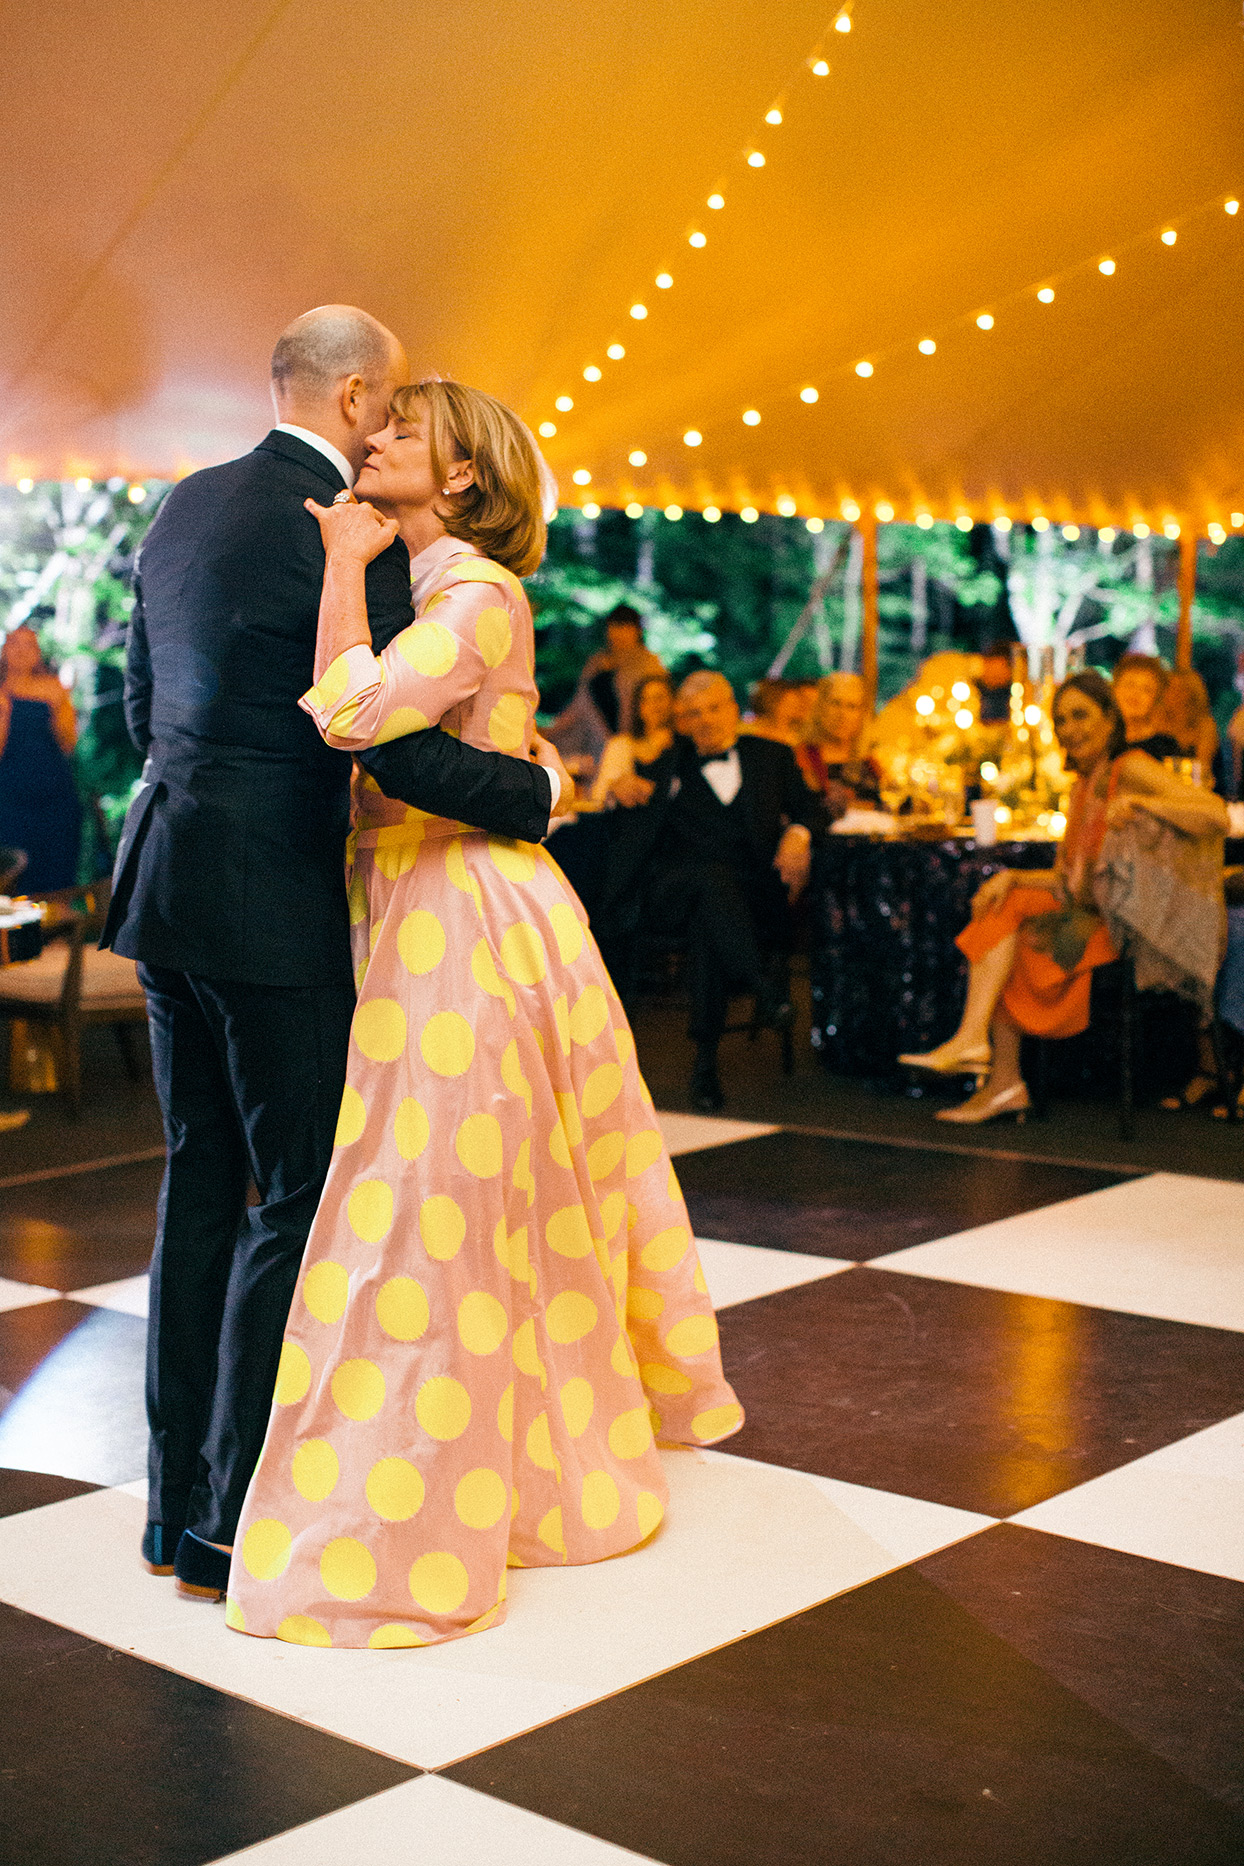 robert anthony wedding mother and son dance in reception tent